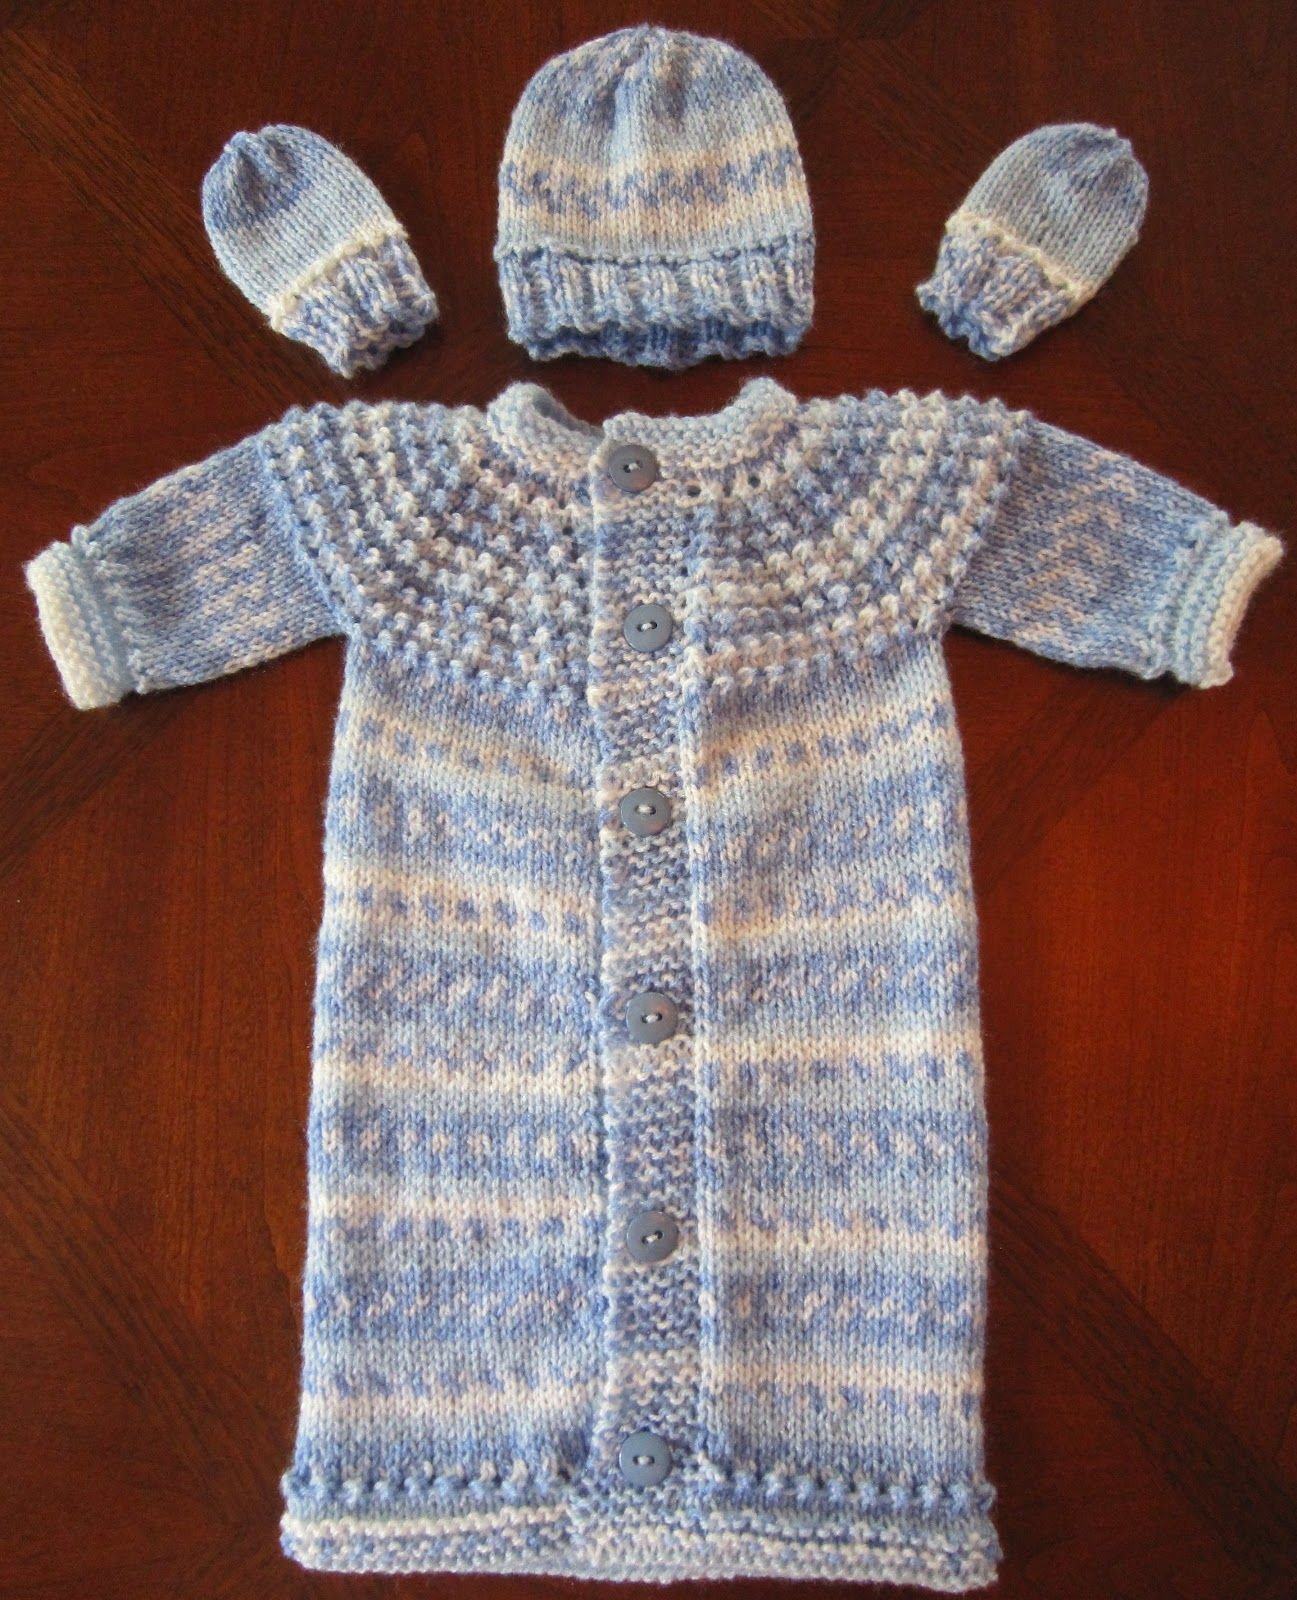 KNITTING PATTERN Preemie & Newborn SLEEP SACK (Sleeping Bag), HAT ...